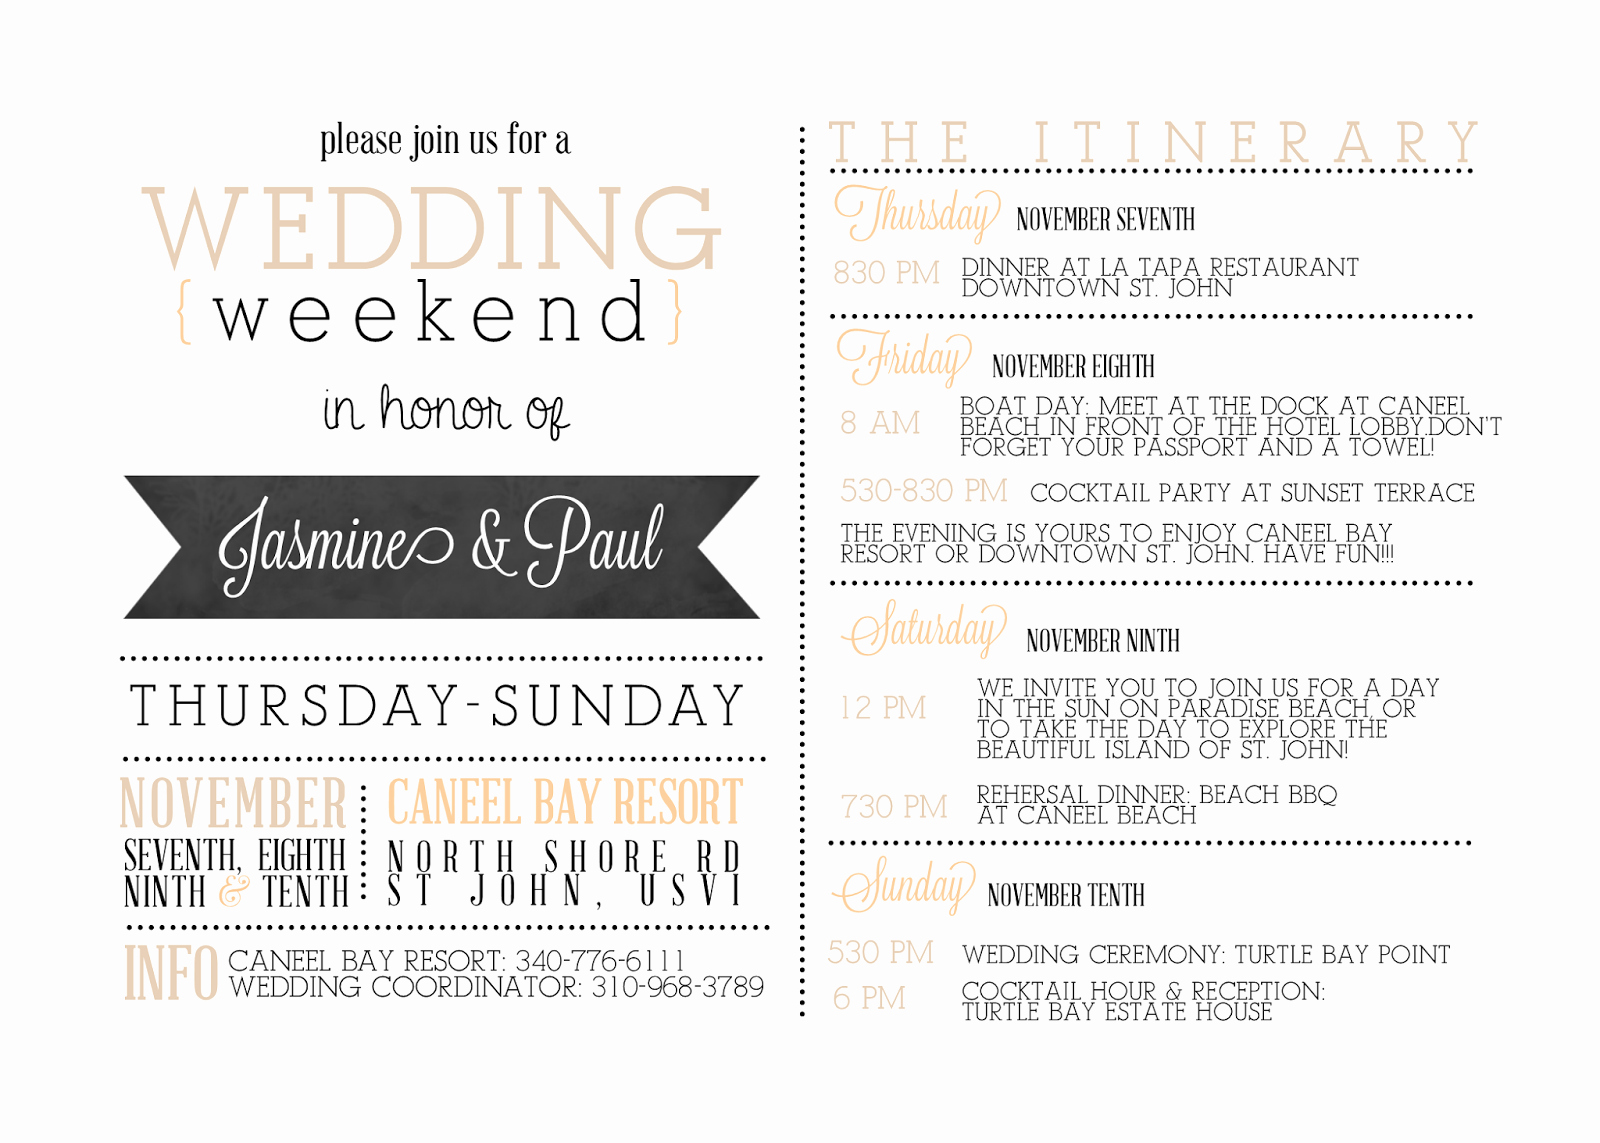 Wedding Weekend Itinerary Templates Fresh Sugar Queens Custom Wedding Wel E Cards